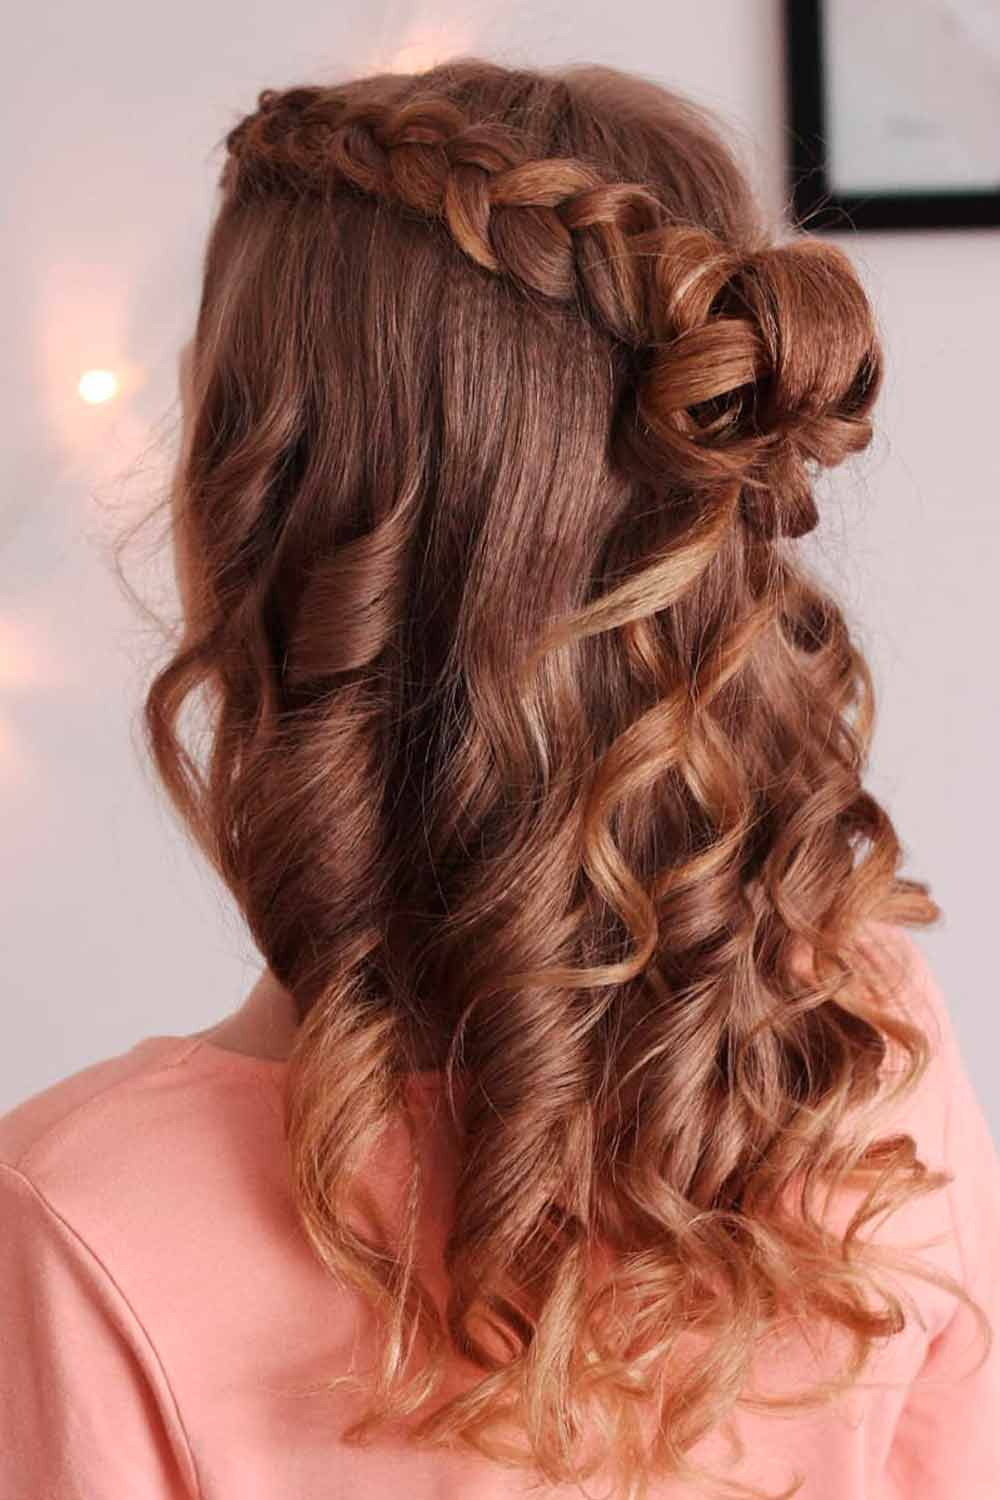 Curly Half-Up For Evening Out #formalhairstyles #curlyhairstyles